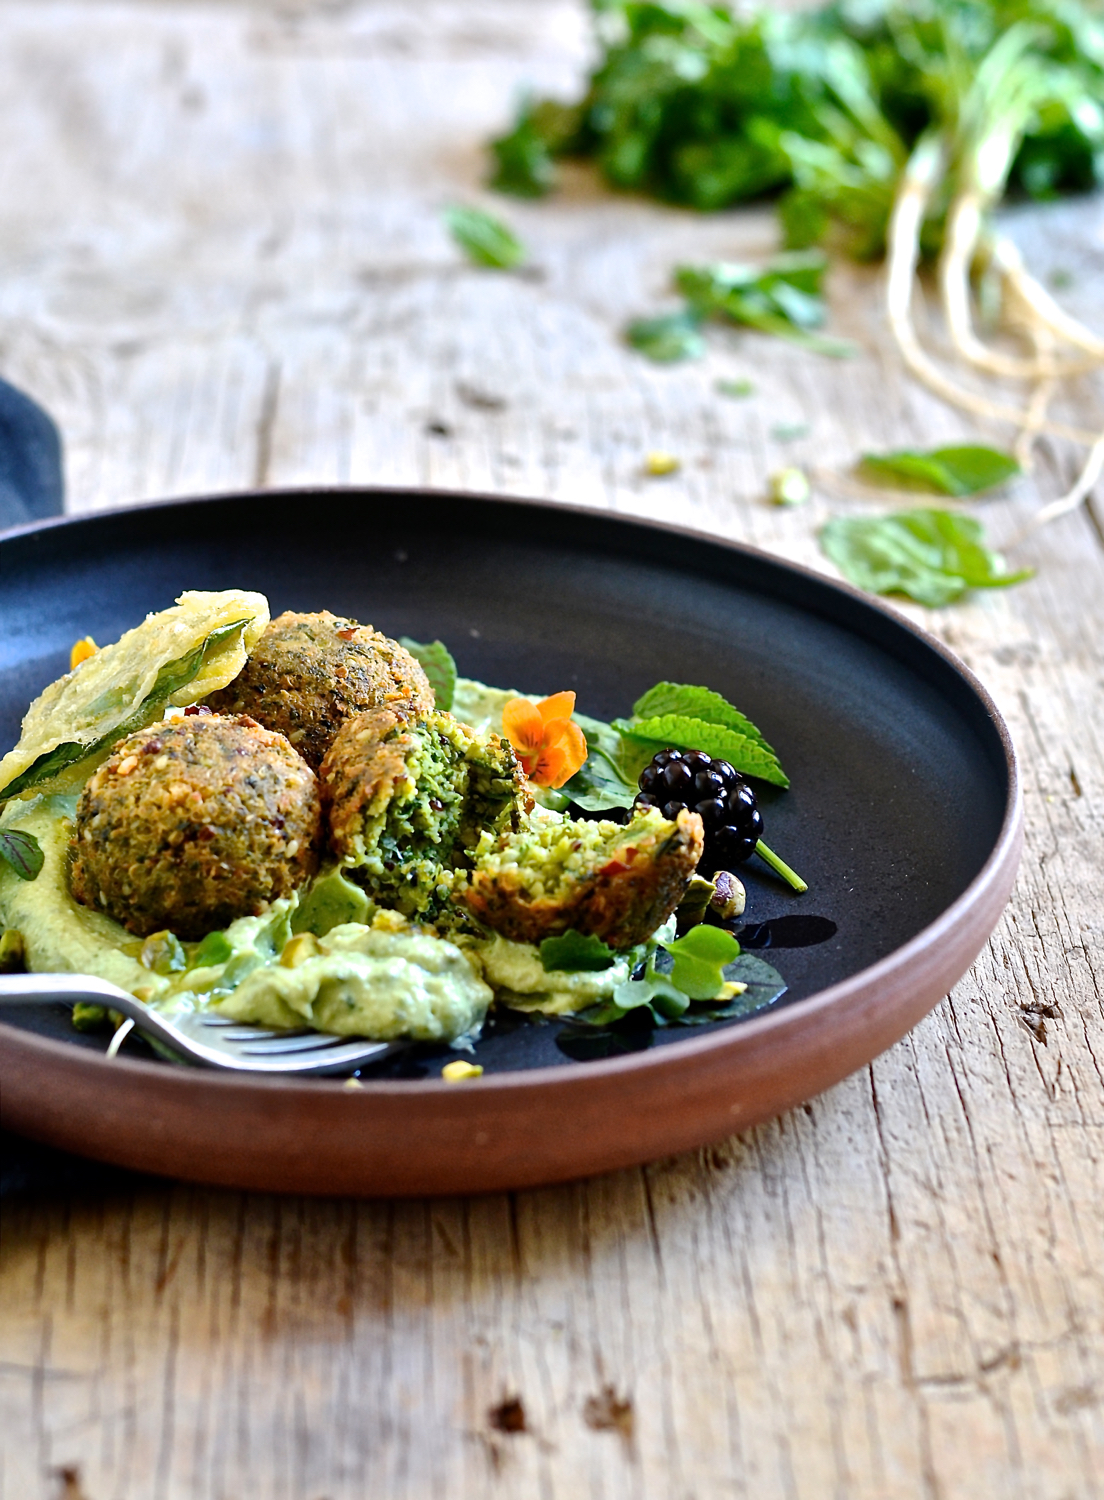 Spinach and quinoa falafel